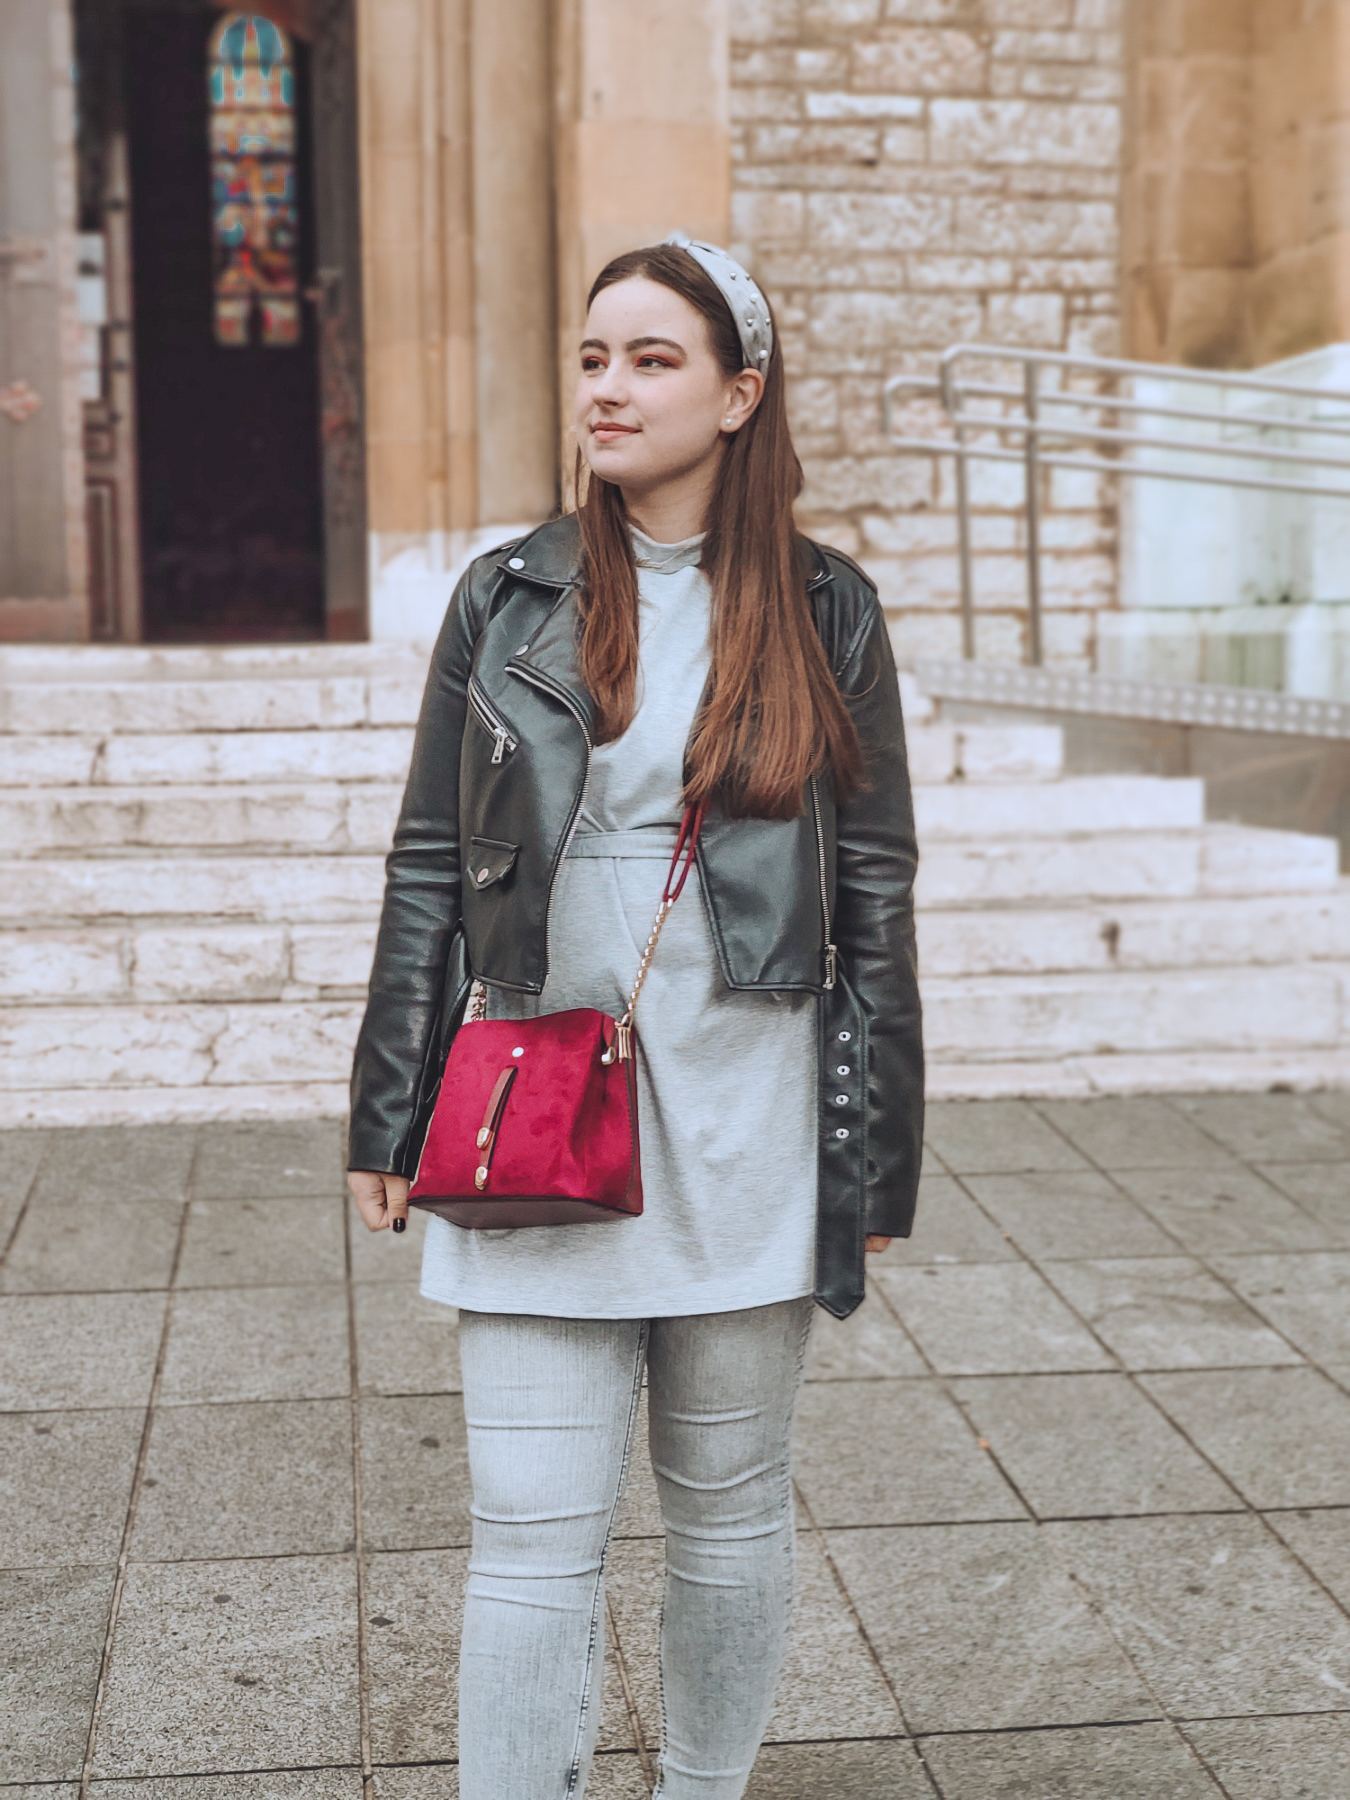 autumn outfit livinglikev fashion blogger autumn outfit ideas fall outfit ideas bosnian blogger livinglikev fashion blogger style blogger sarajevo photography